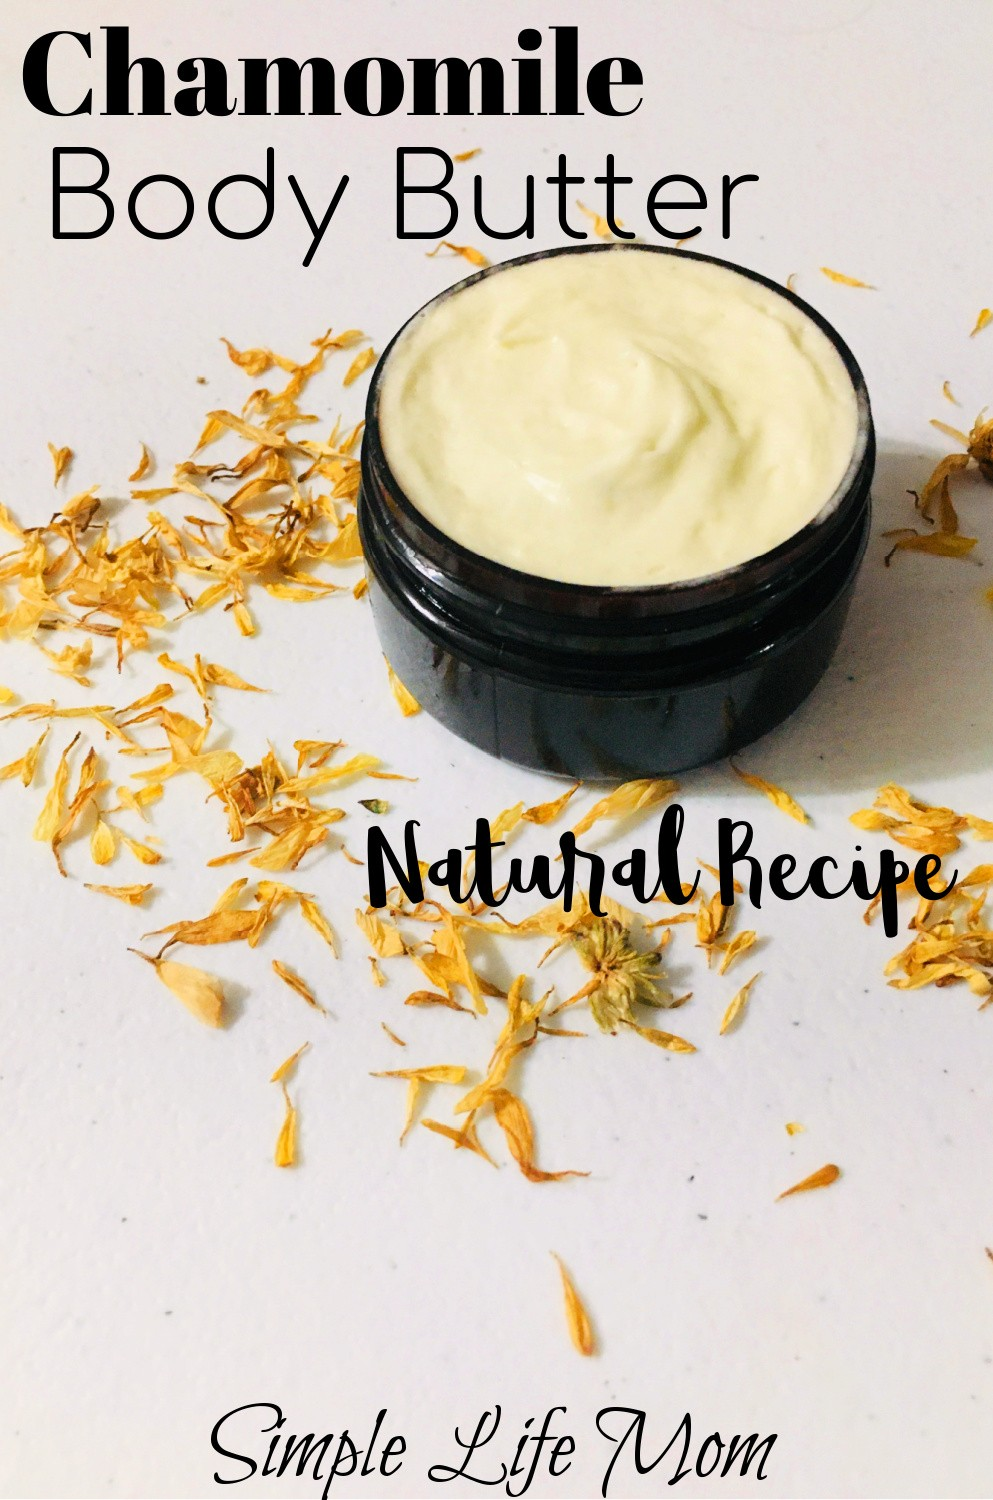 Chamomile Body Butter Recipe